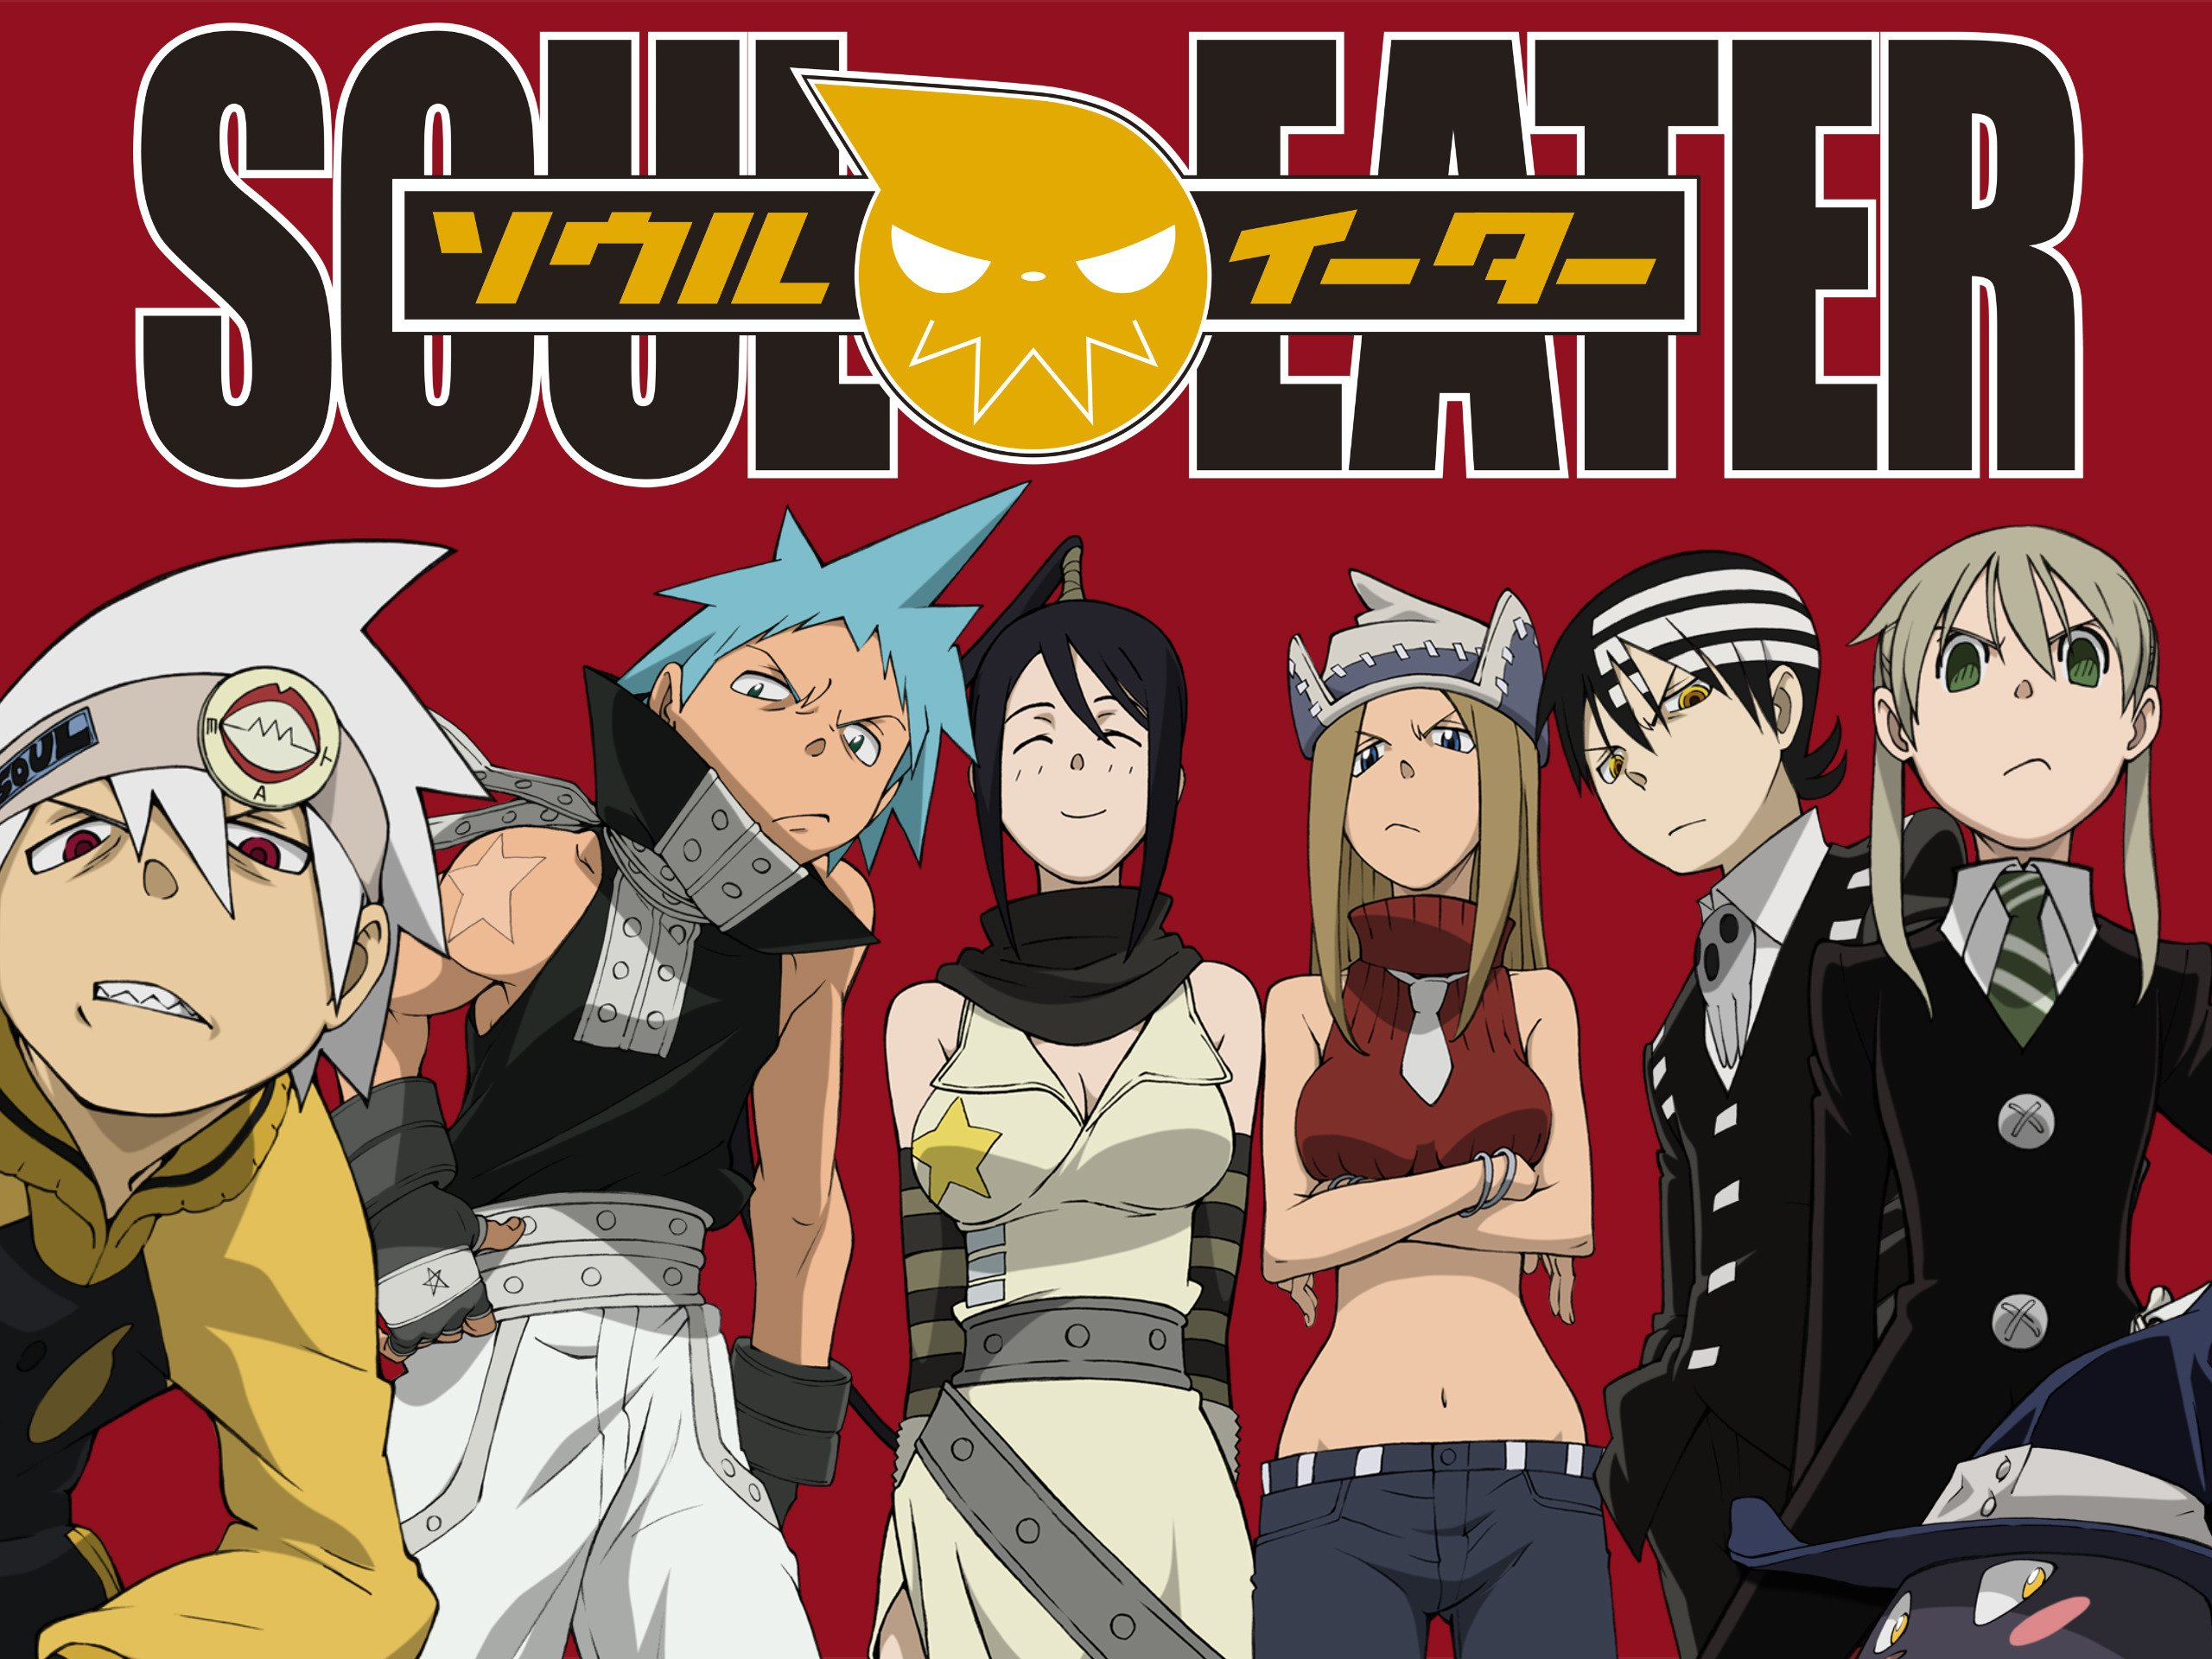 SOUL EATER - Anime Similar to Fairy Tail